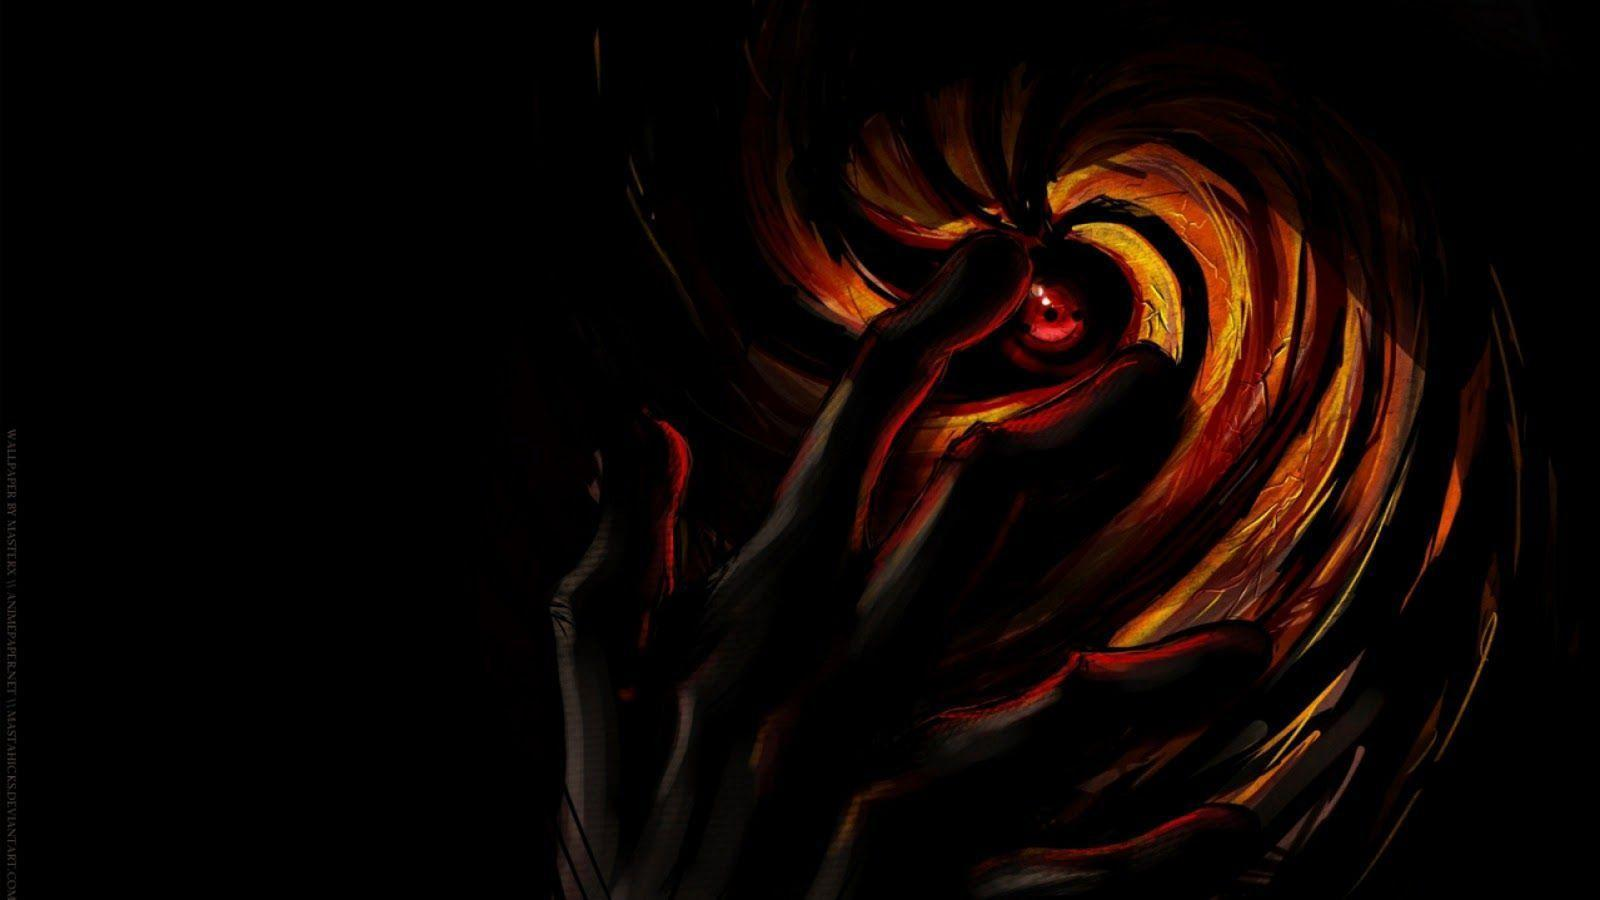 obito uchiha wallpapers wallpaper cave